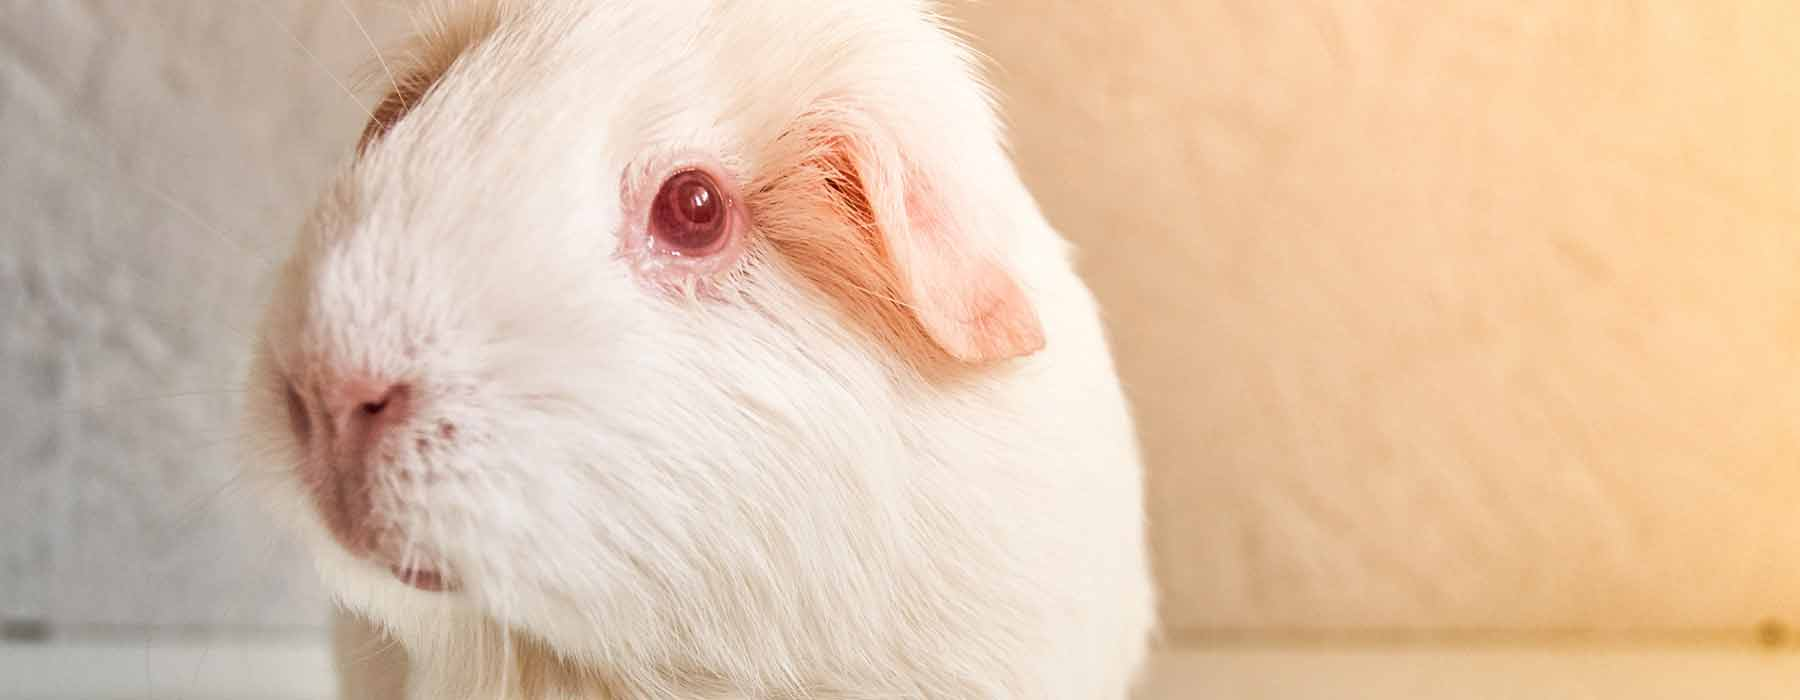 White guinea pig with pink eyes